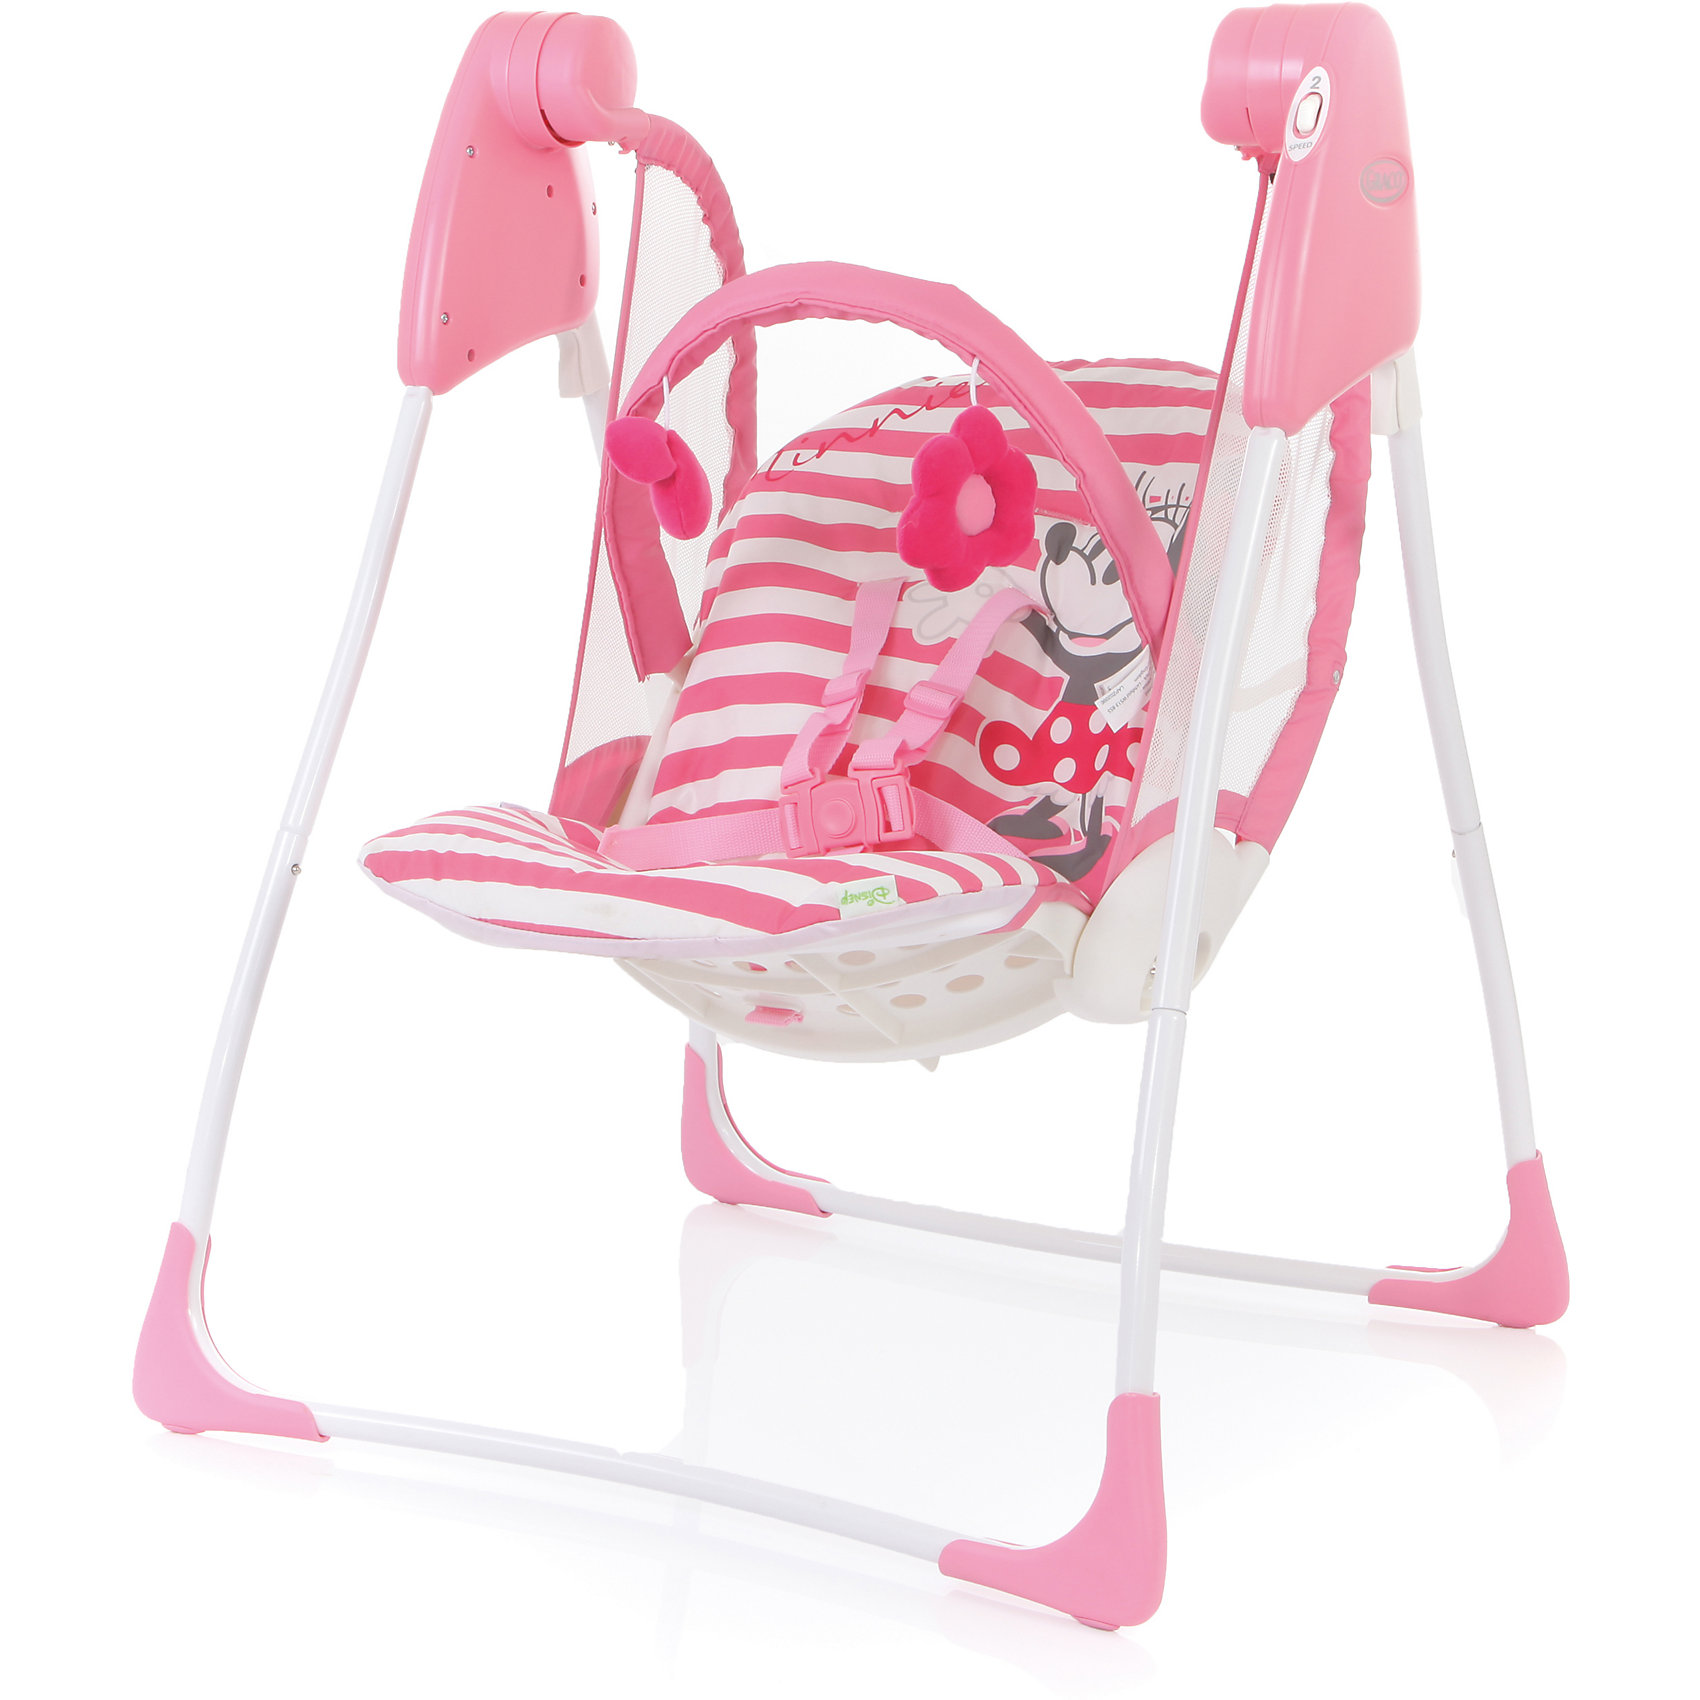 Graco Электрокачели Baby Delight, Simply Minnie, Graco graco электрокачели sweet snuggle с адаптером graco